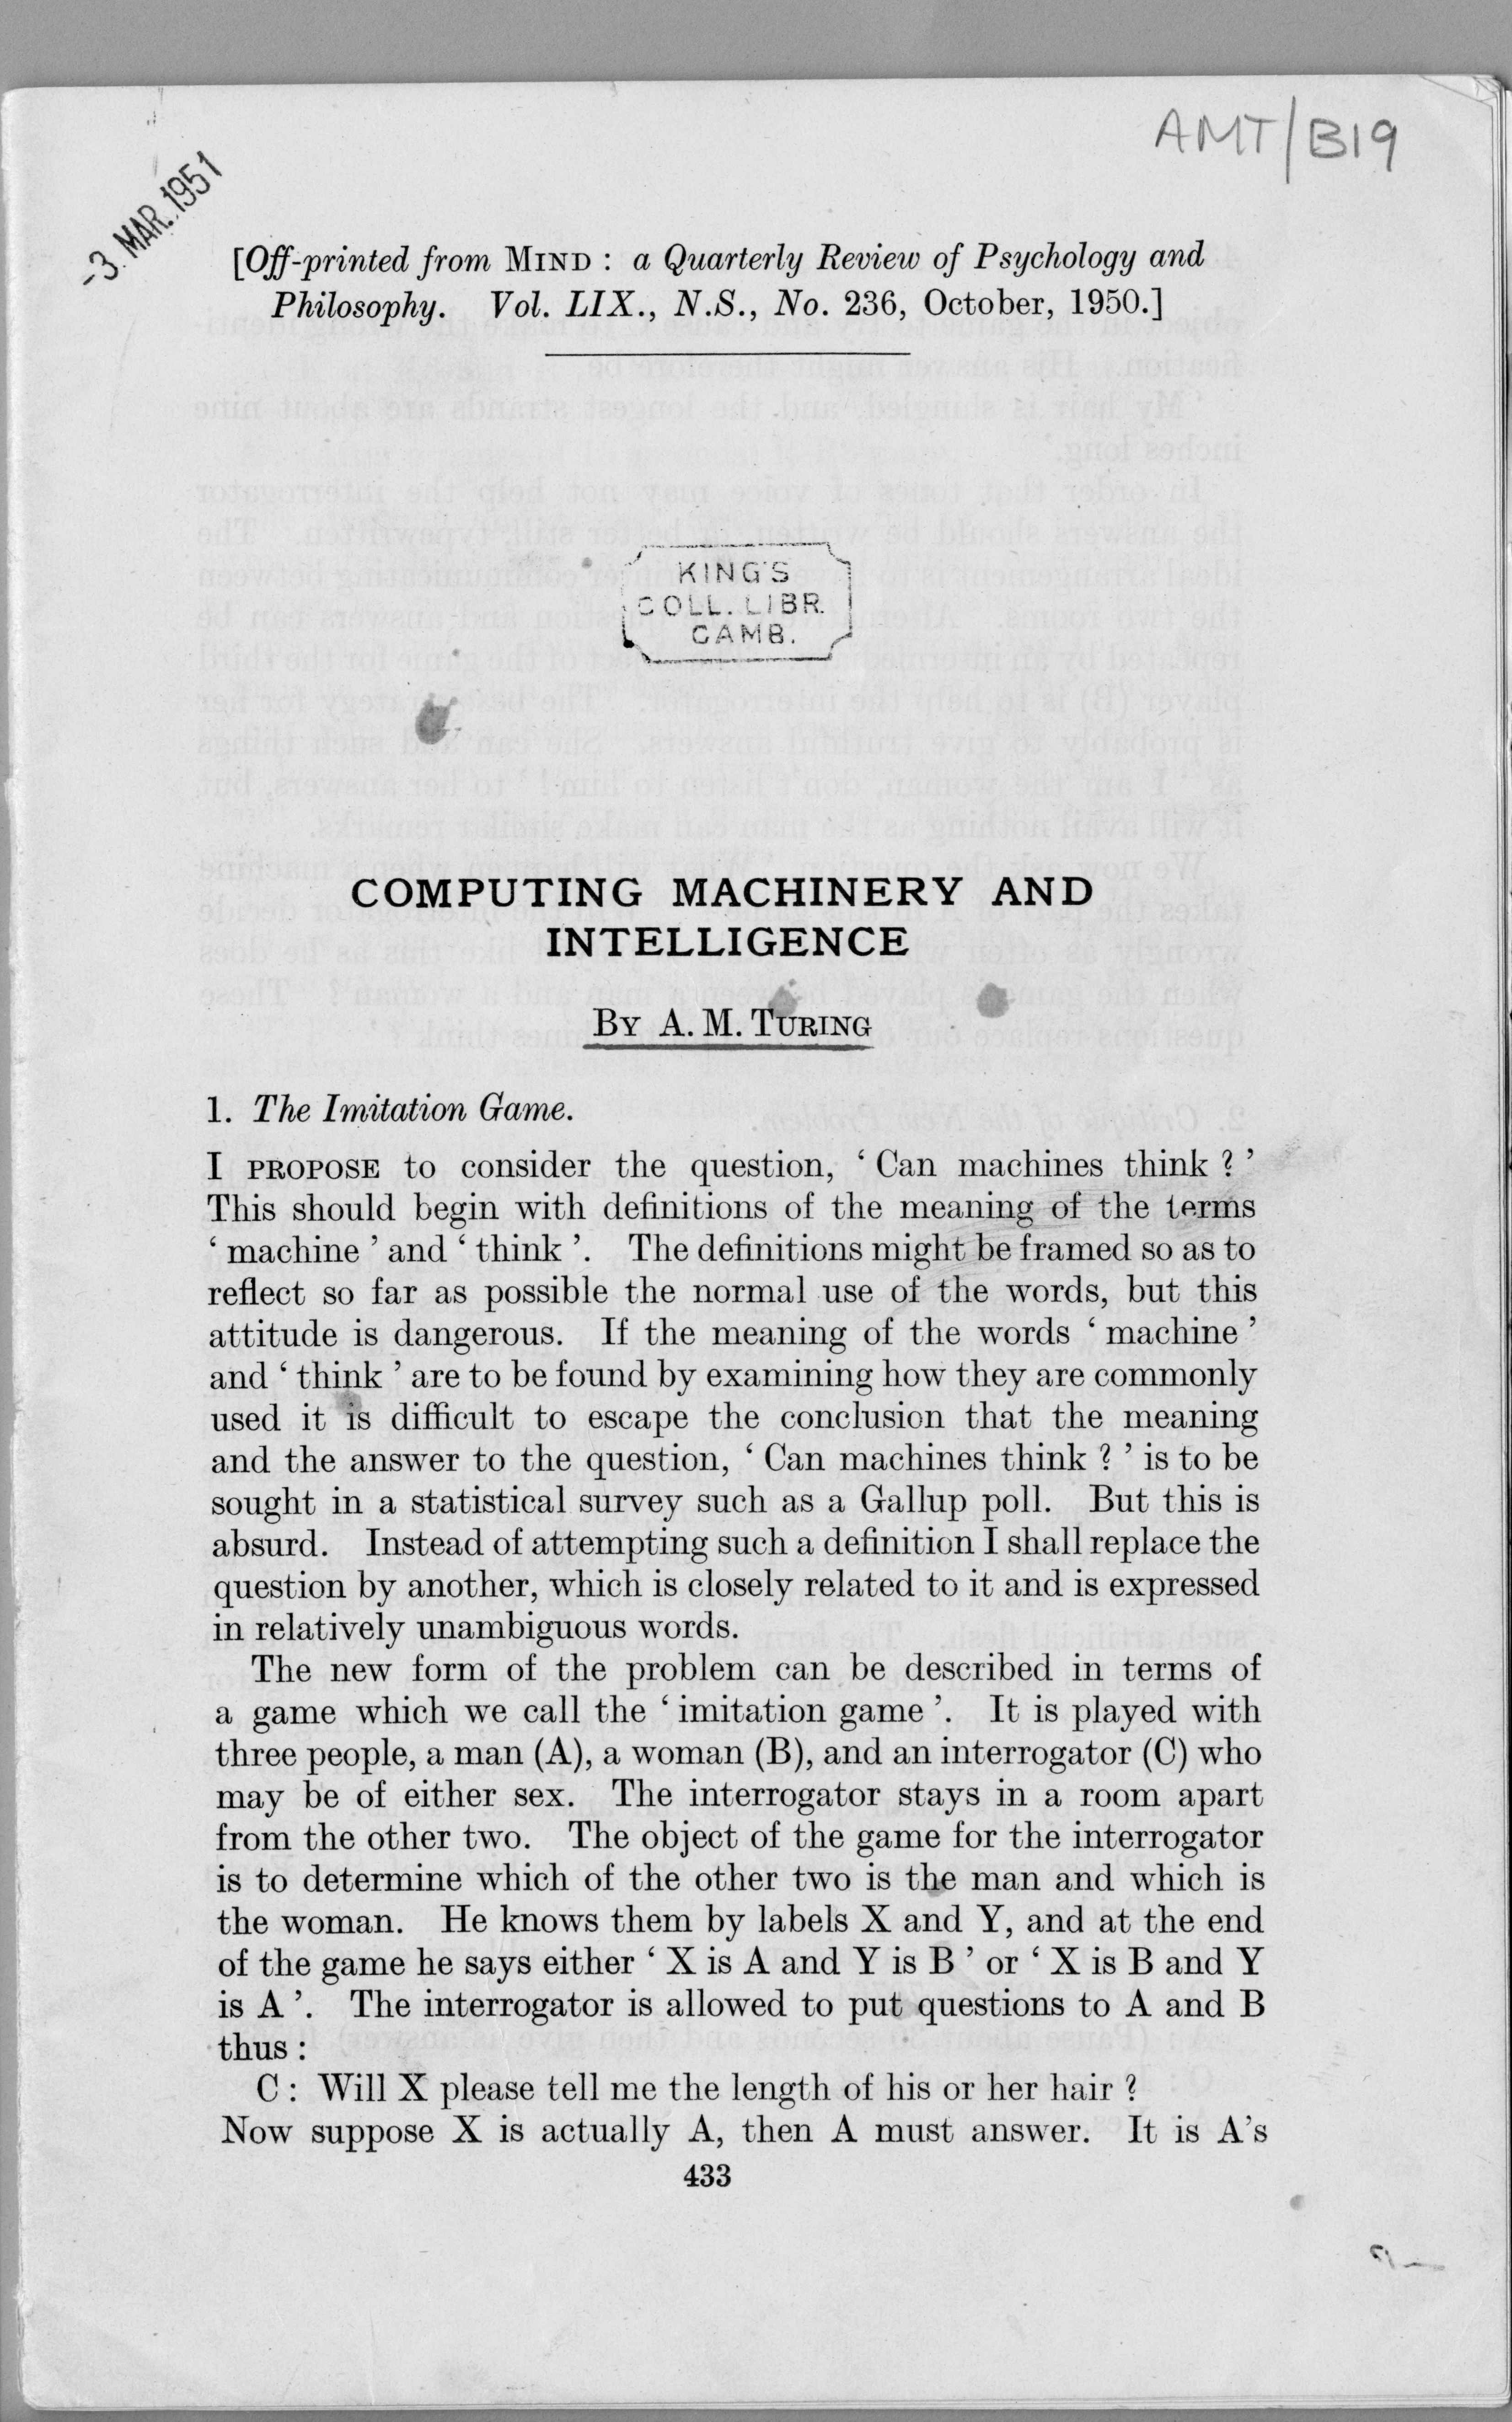 First page of 'Computing Machinery and Intelligence'. [AMT B/19]